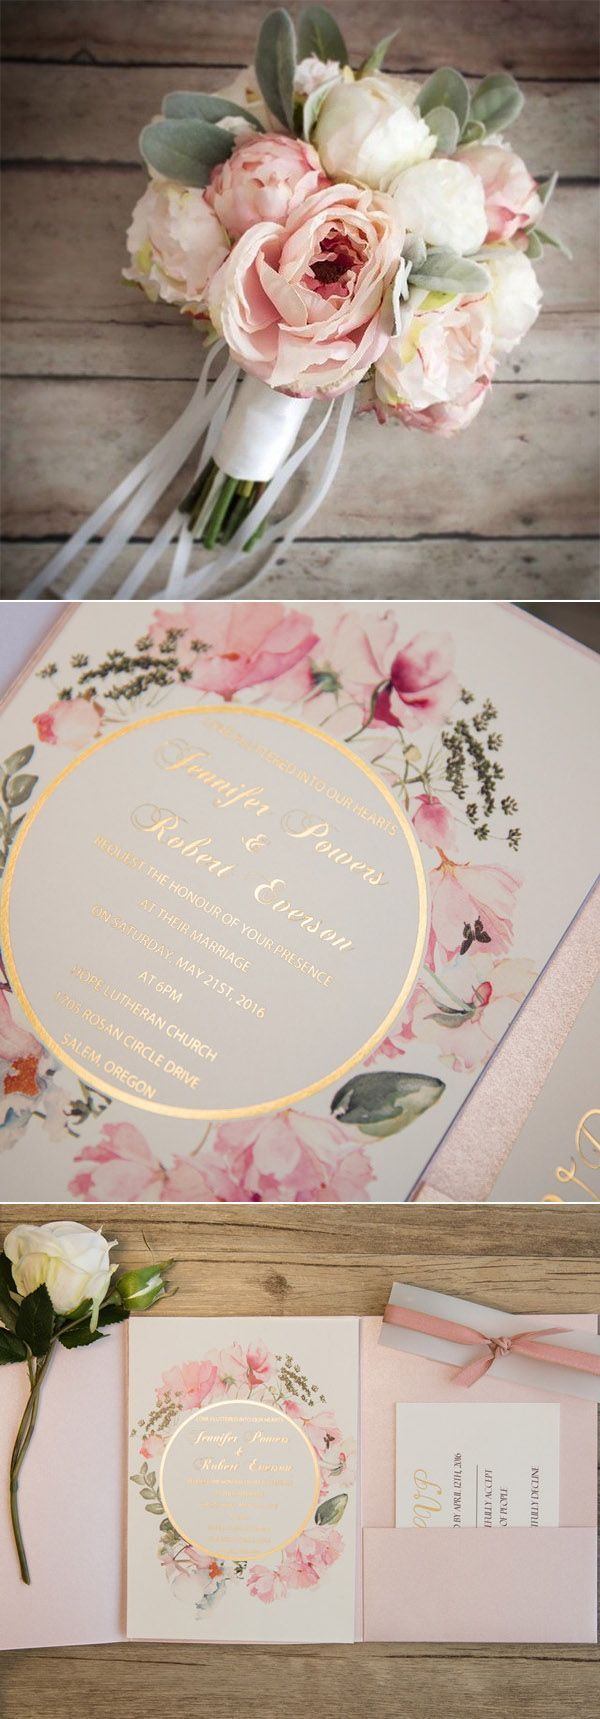 Wedding ideas blush pink  Stunning Pink Wedding Ideas and Invitations With Gold u Silver